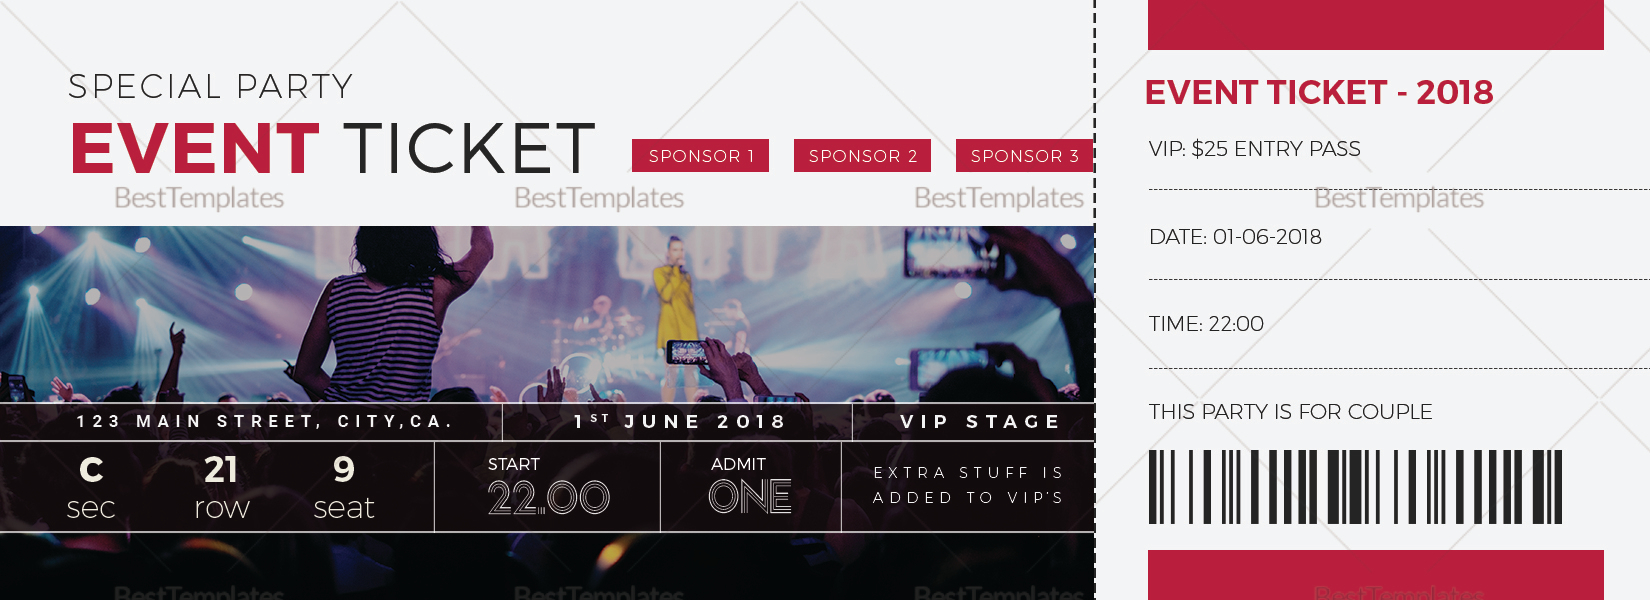 special event ticket design template in word psd pages publisher